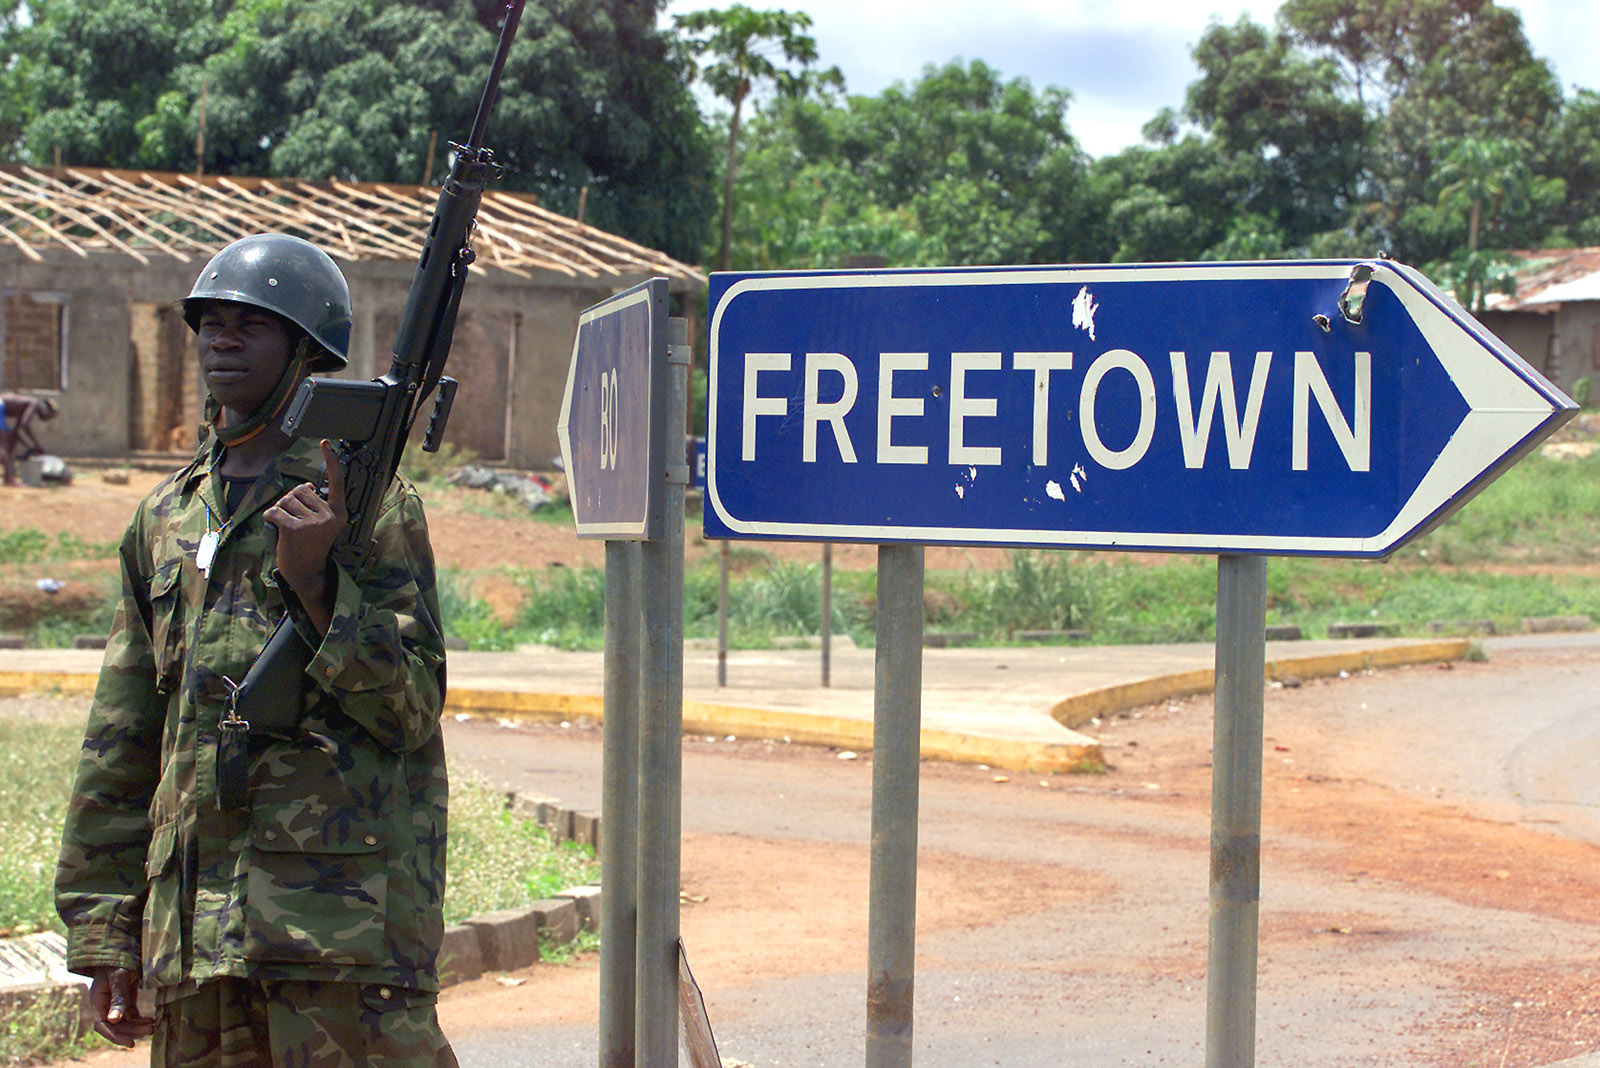 A government soldier in Masiaka, a town about 40 miles east of Sierra Leone's capital, Freetown, on the day the rebel leader Foday Sankoh was captured there, May 17, 2000